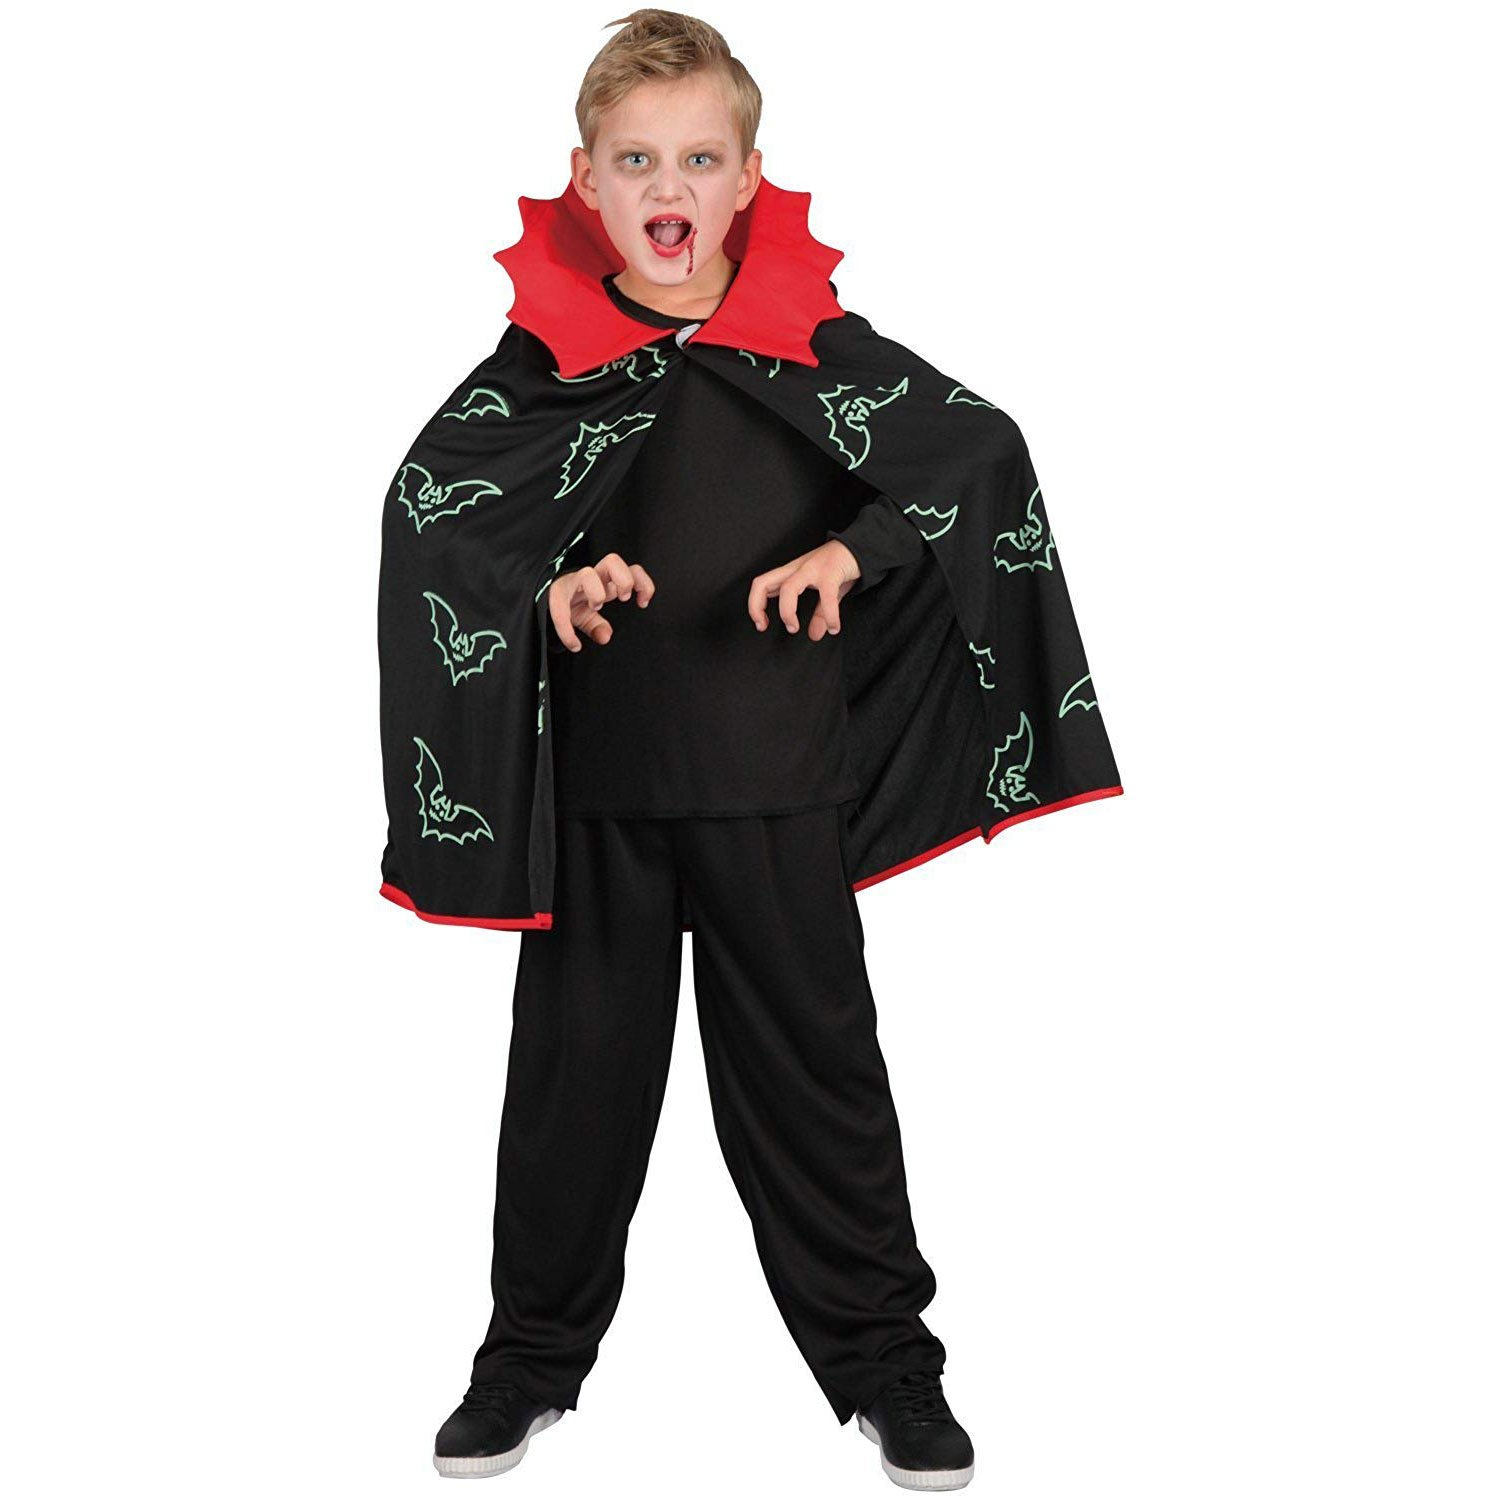 Halloween Vampire Costume Kids.Vampire Halloween Costume For Kids Boys